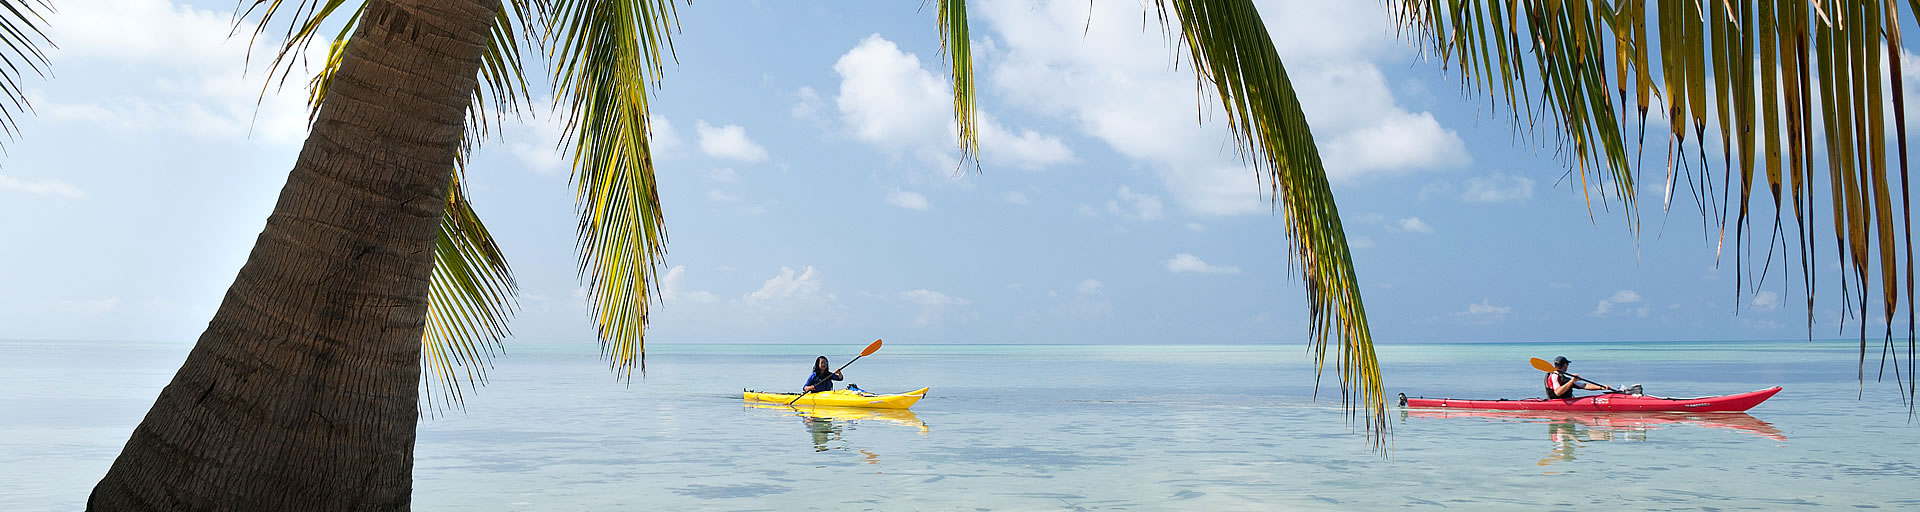 Sea Kayaking at Glover's Reef